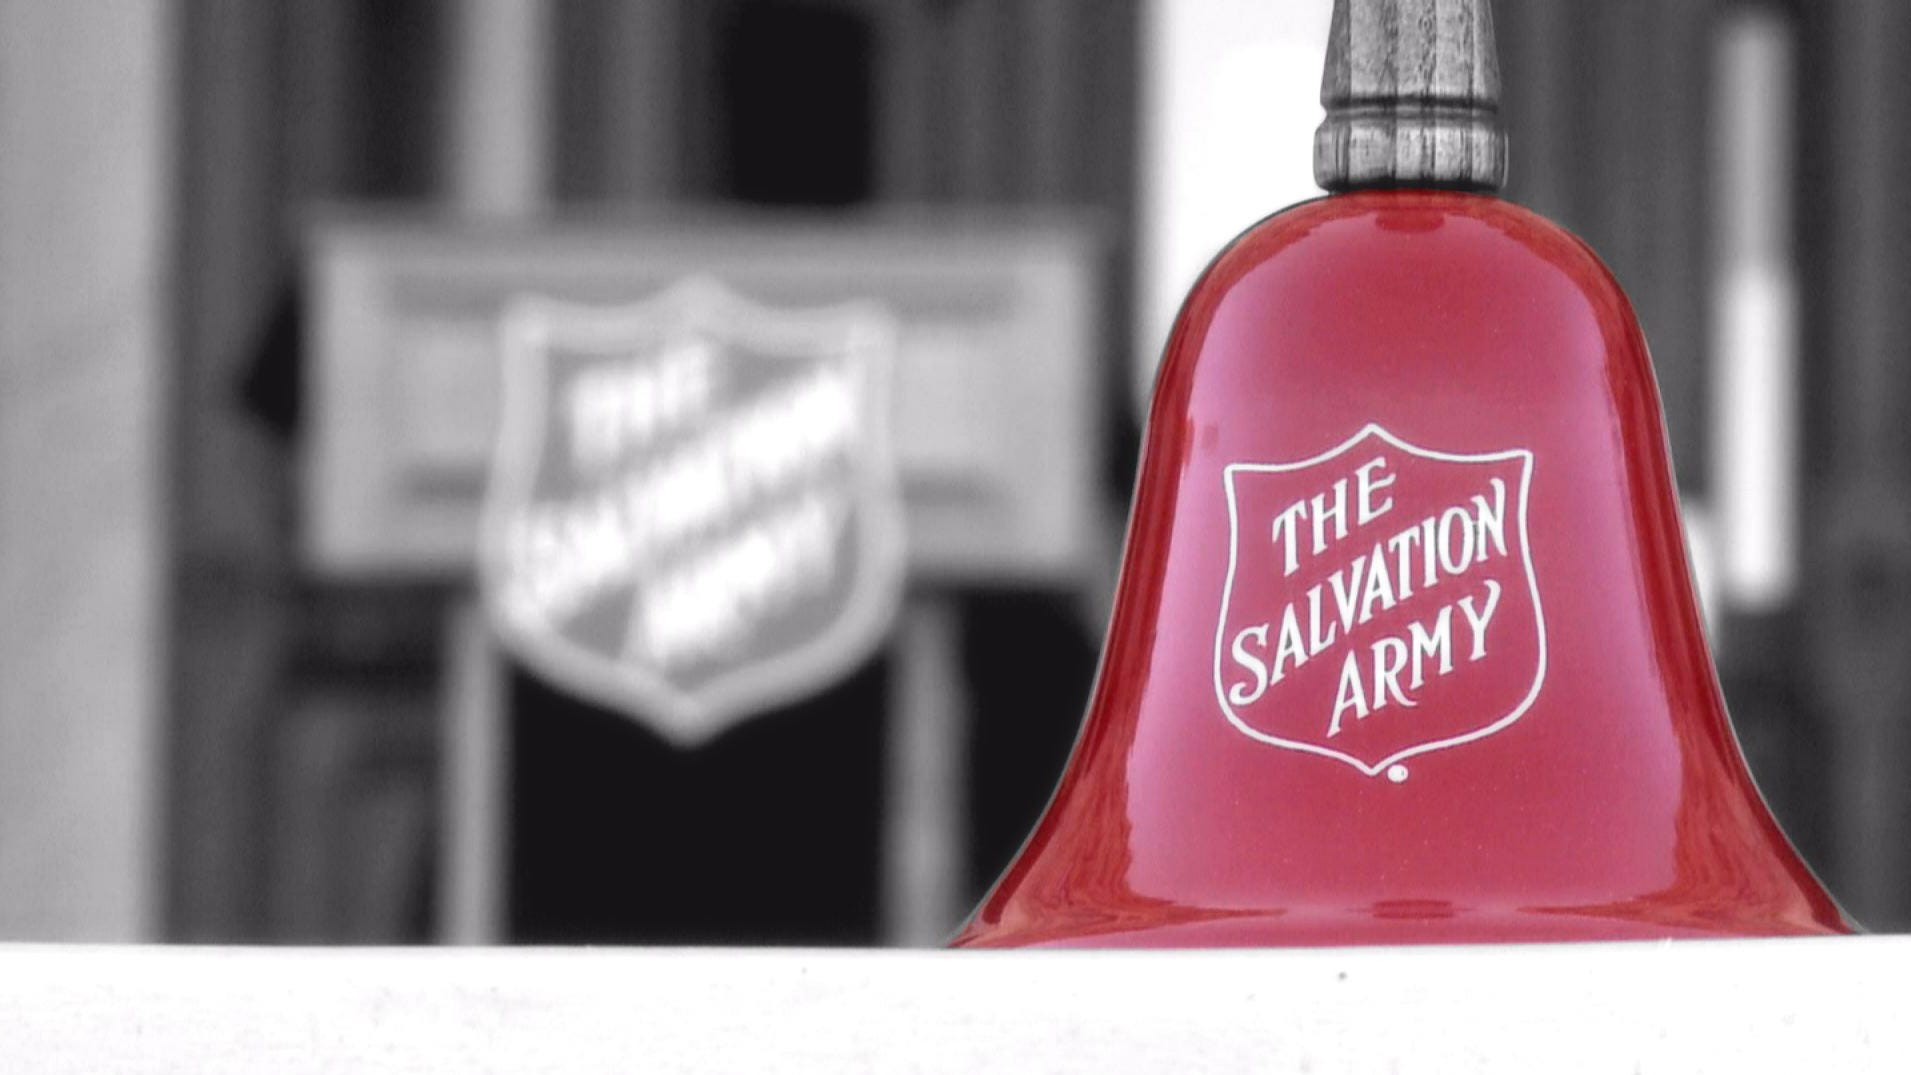 Salvation Army donations 2020 fall short of Gainesville goal